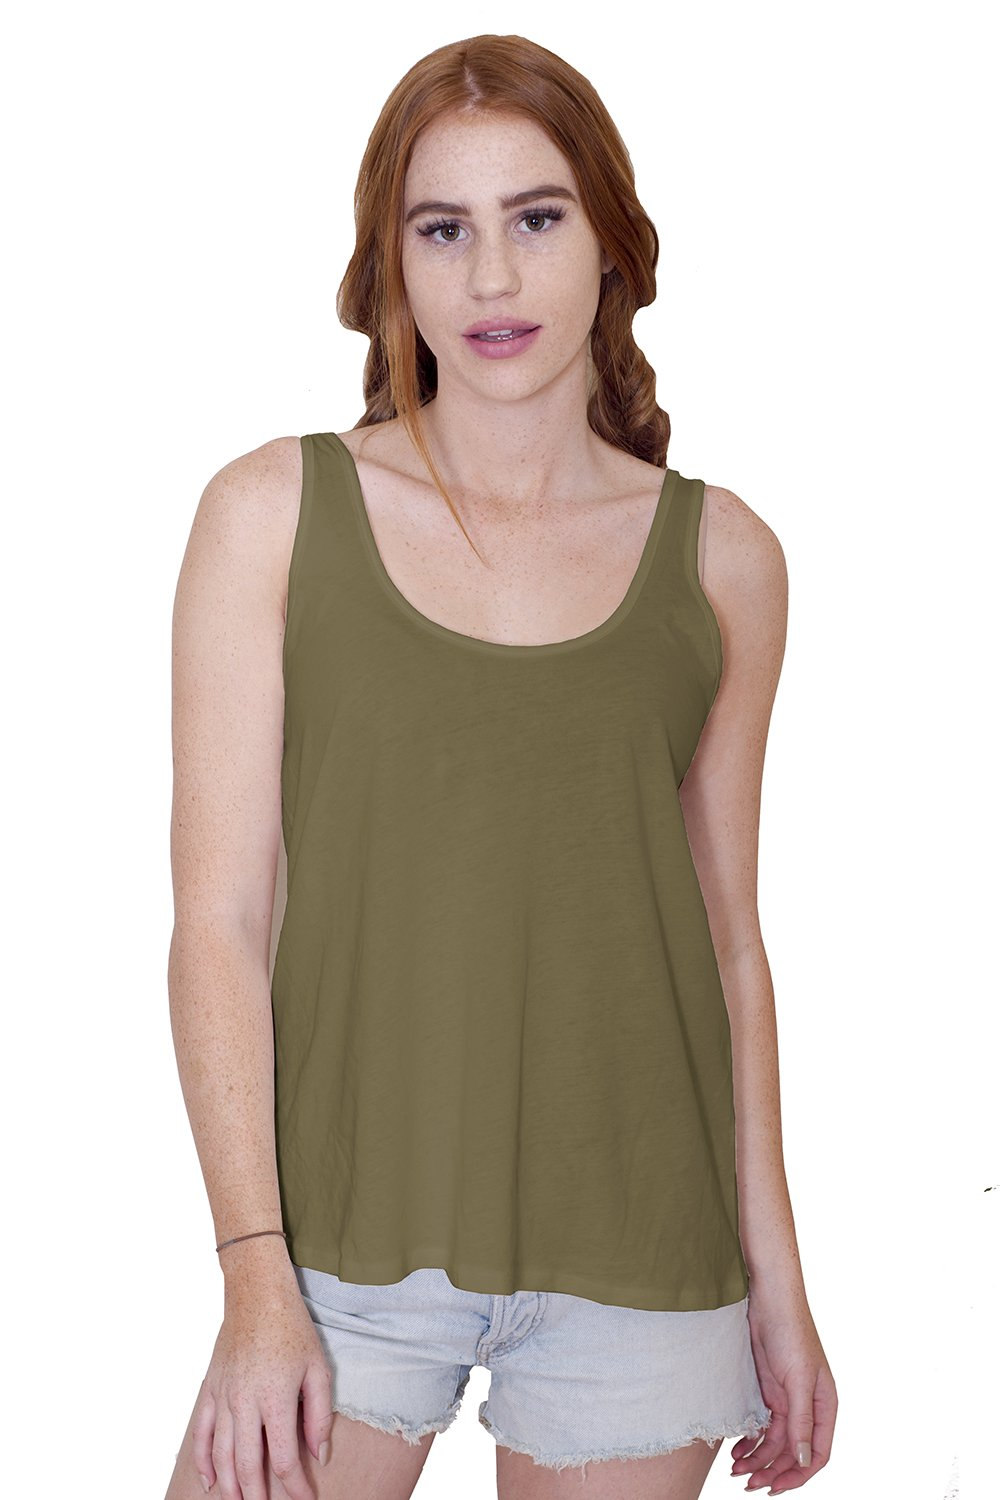 Women's Certified Organic Cotton Loose Fit Flowy Tank Top - Non-GMO, Eco Friendly, Made in The USA